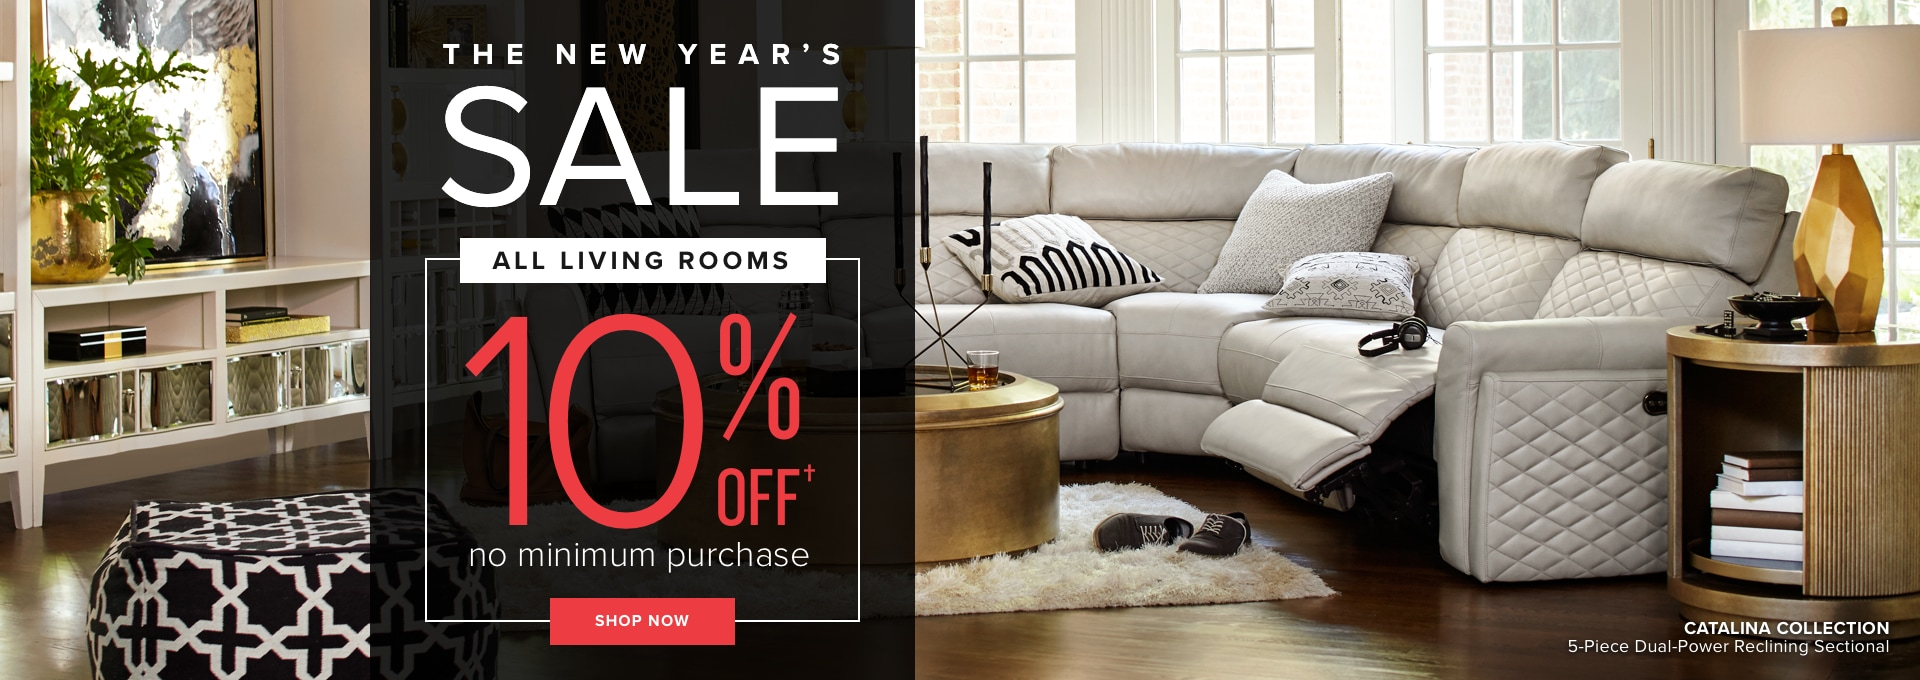 All Living Rooms 10% Off No Minimum Purchase Shop Now